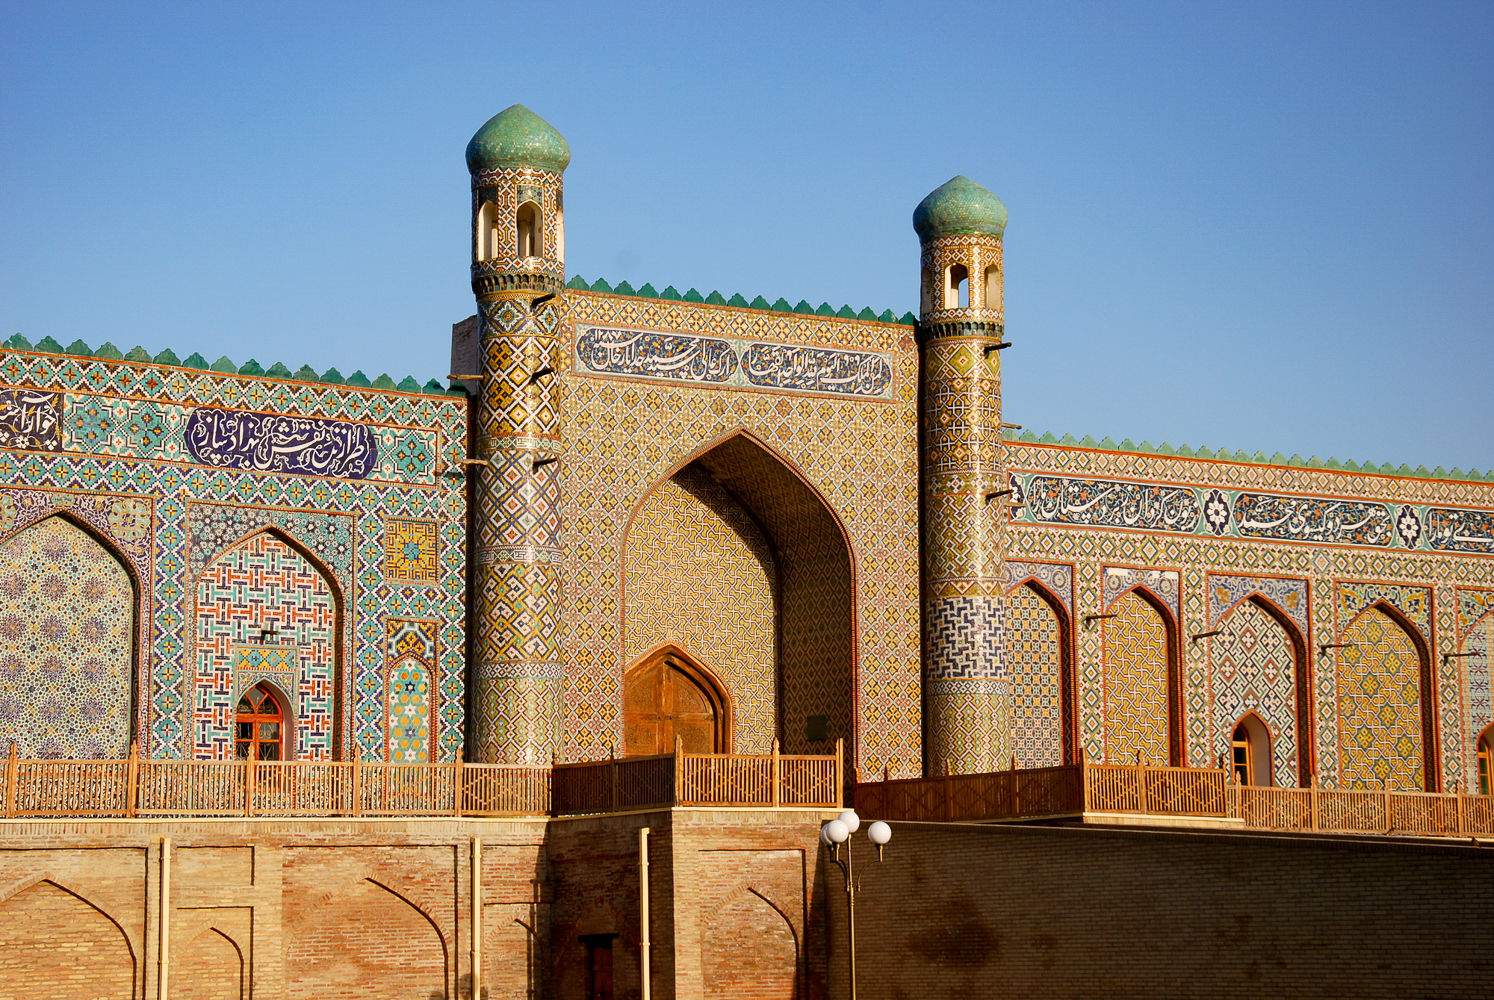 Arabic inscription on Khudoyar Khan Palace, Kokand